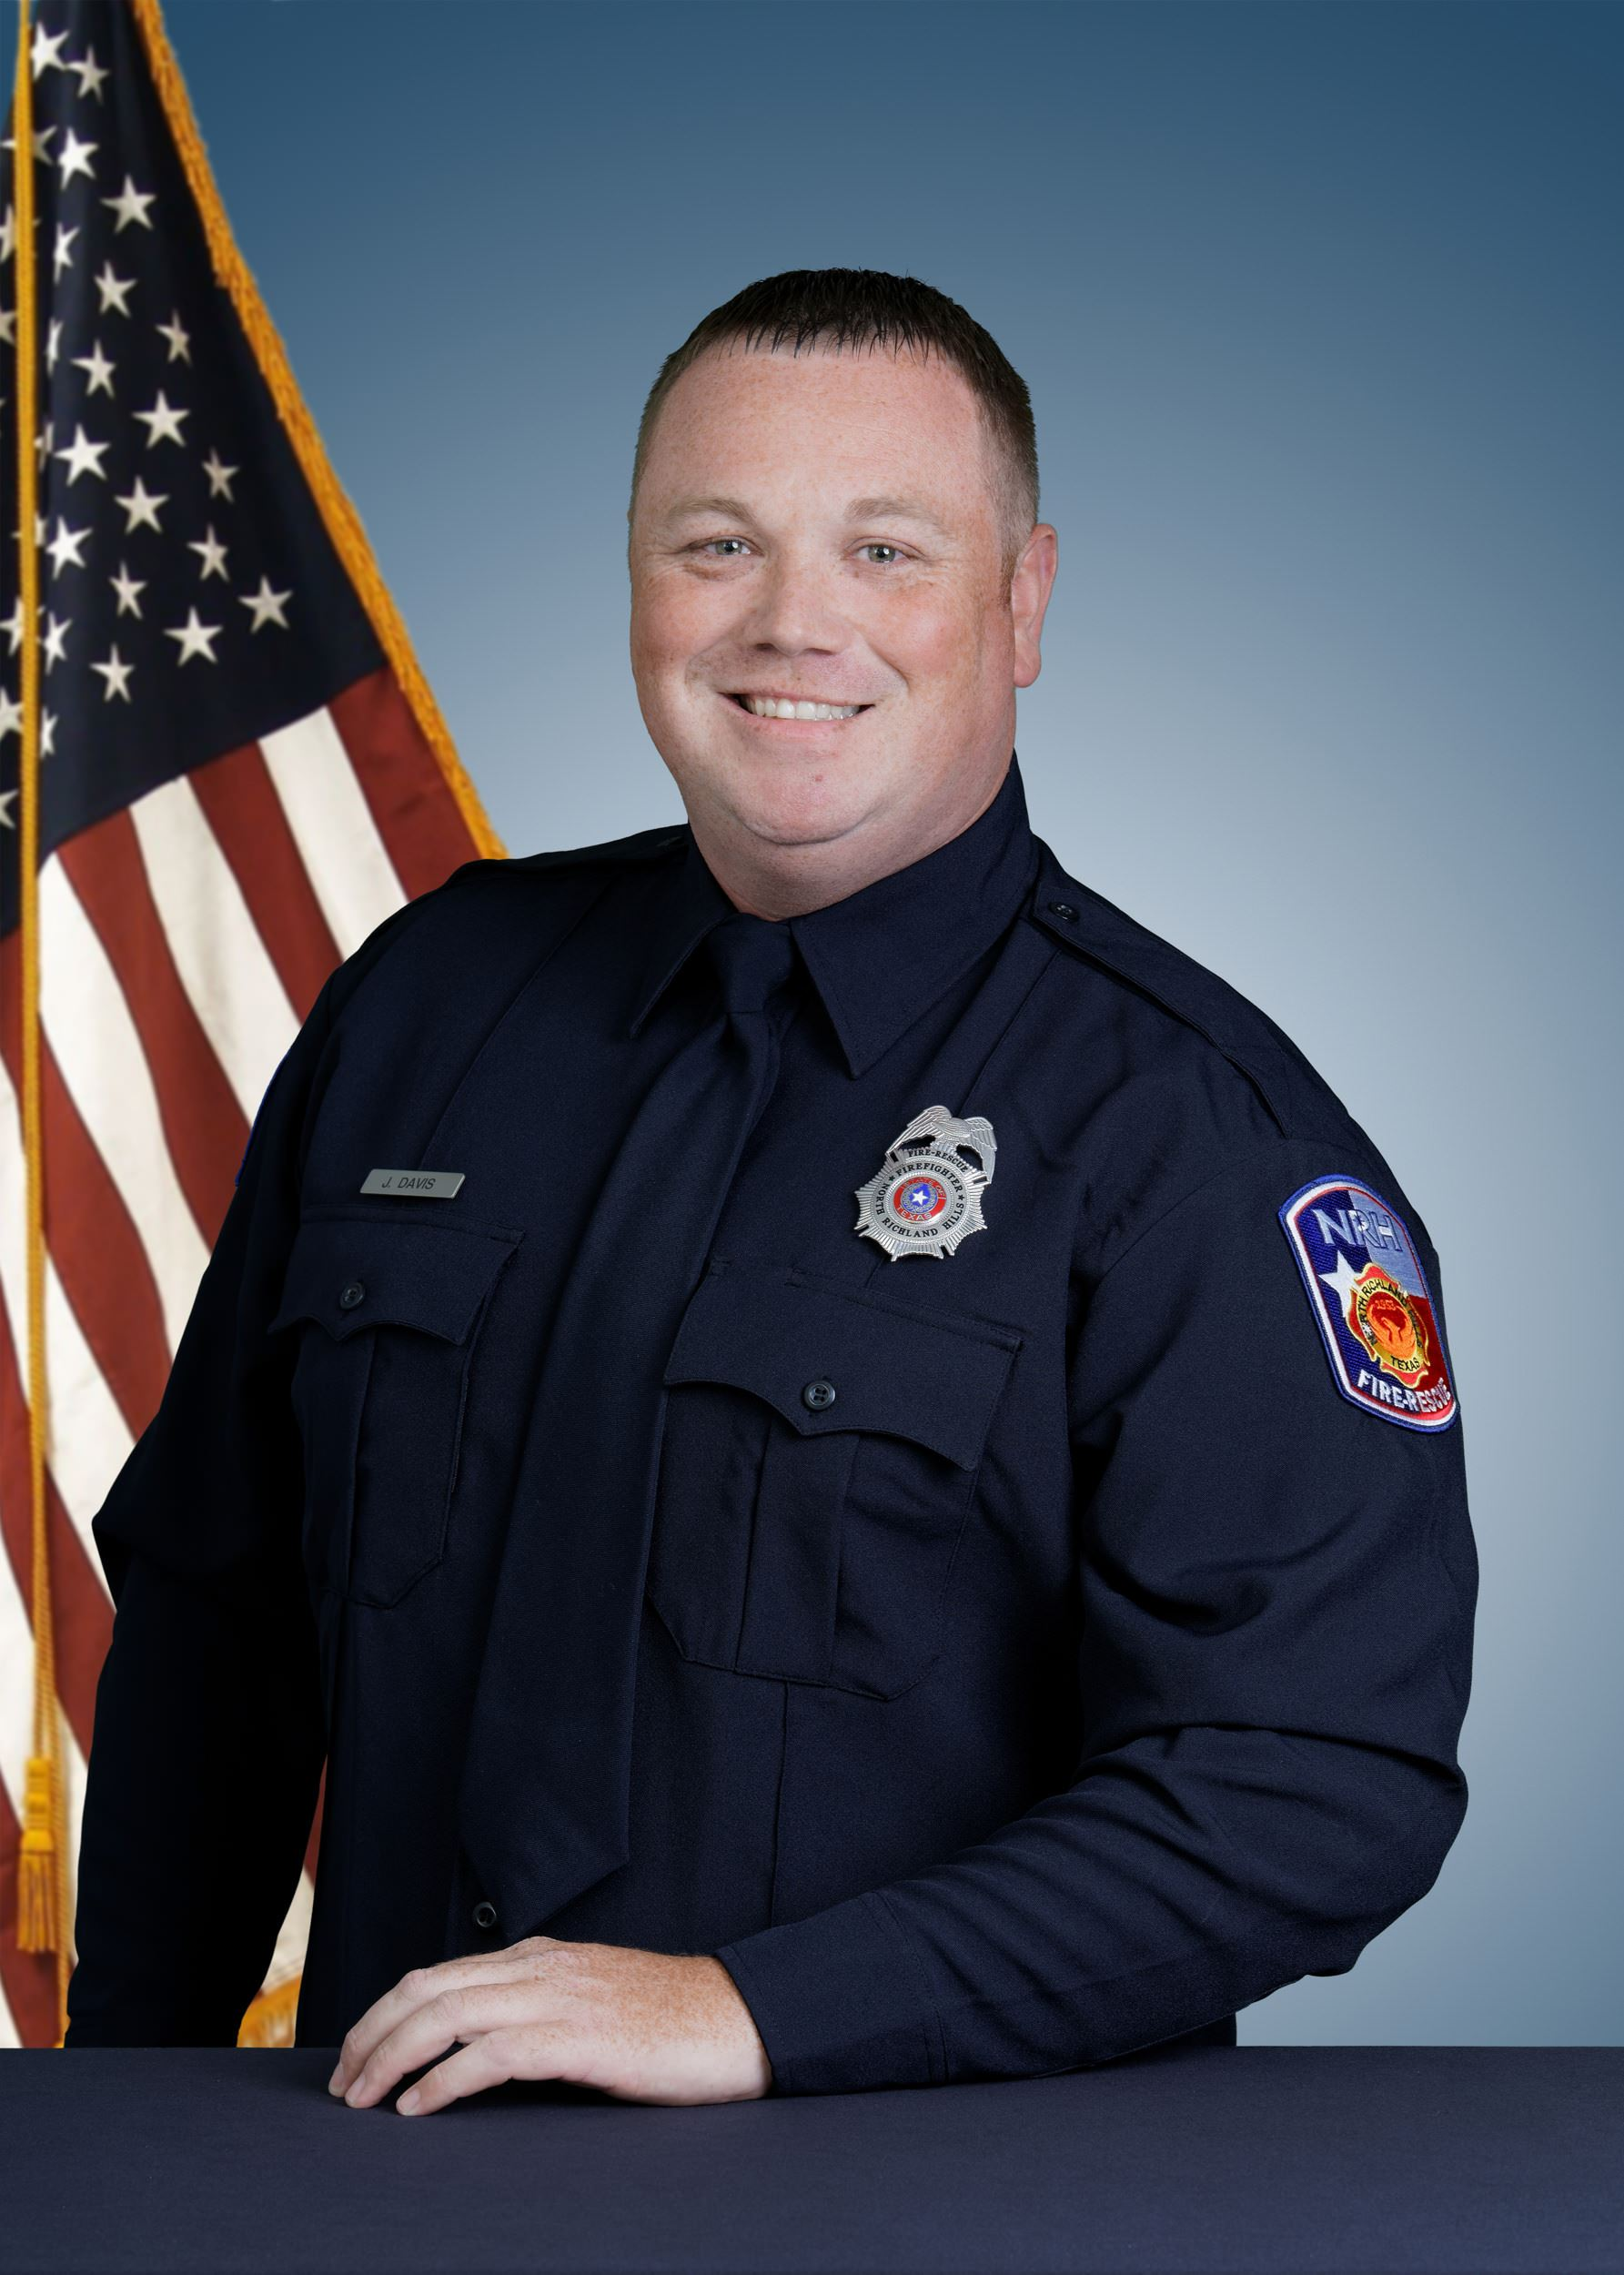 Jason Davis FireFighter Paramedic